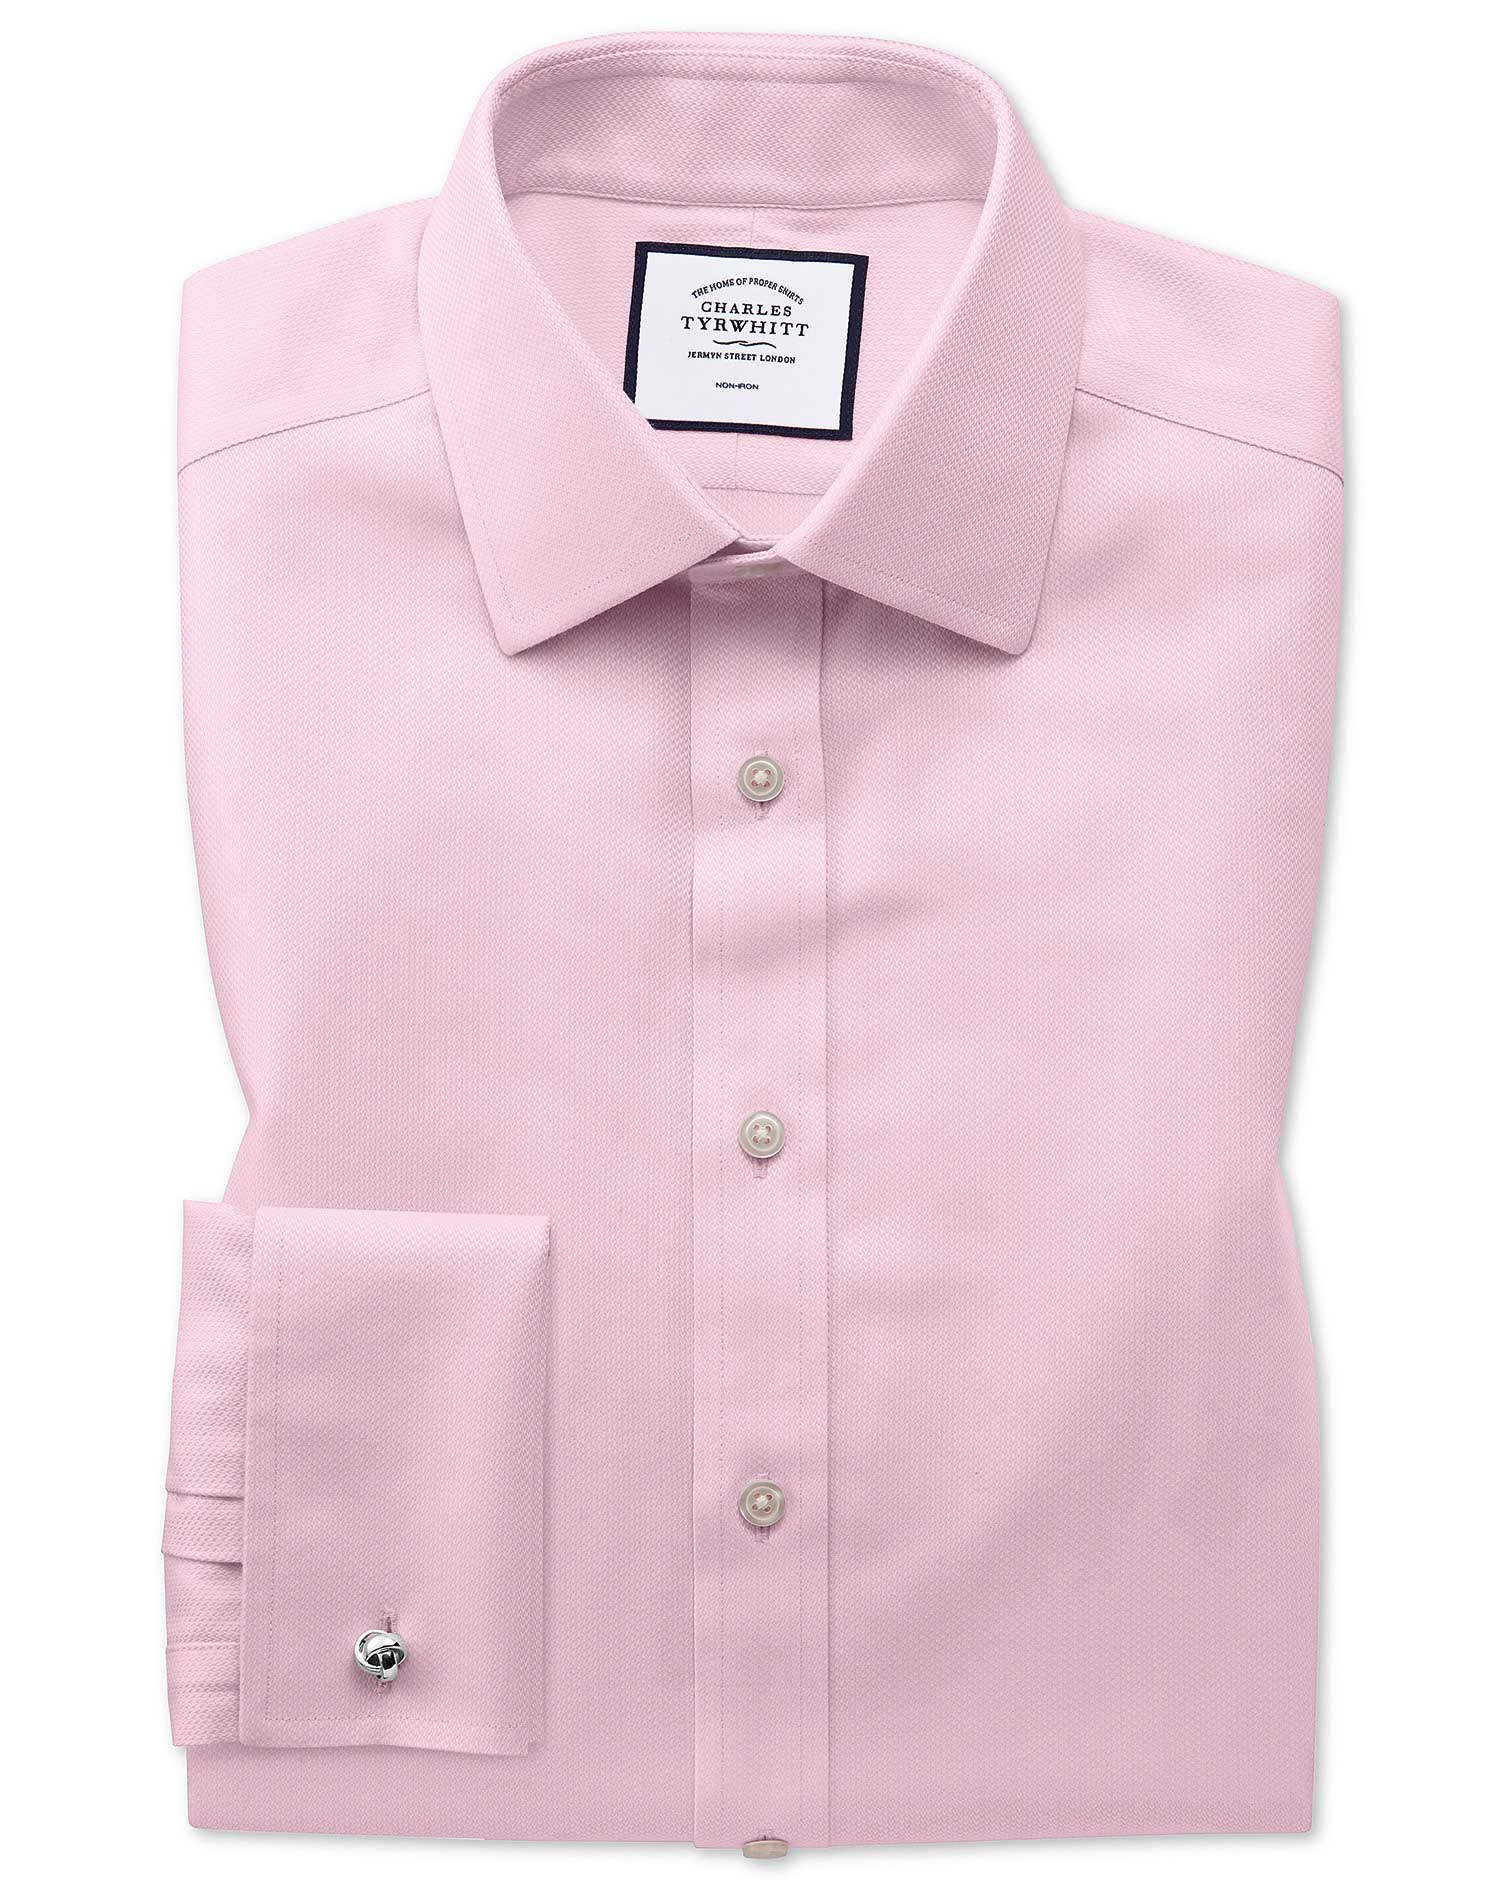 Classic Fit Non-Iron Pink Arrow Weave Cotton Formal Shirt Single Cuff Size 16/33 by Charles Tyrwhitt